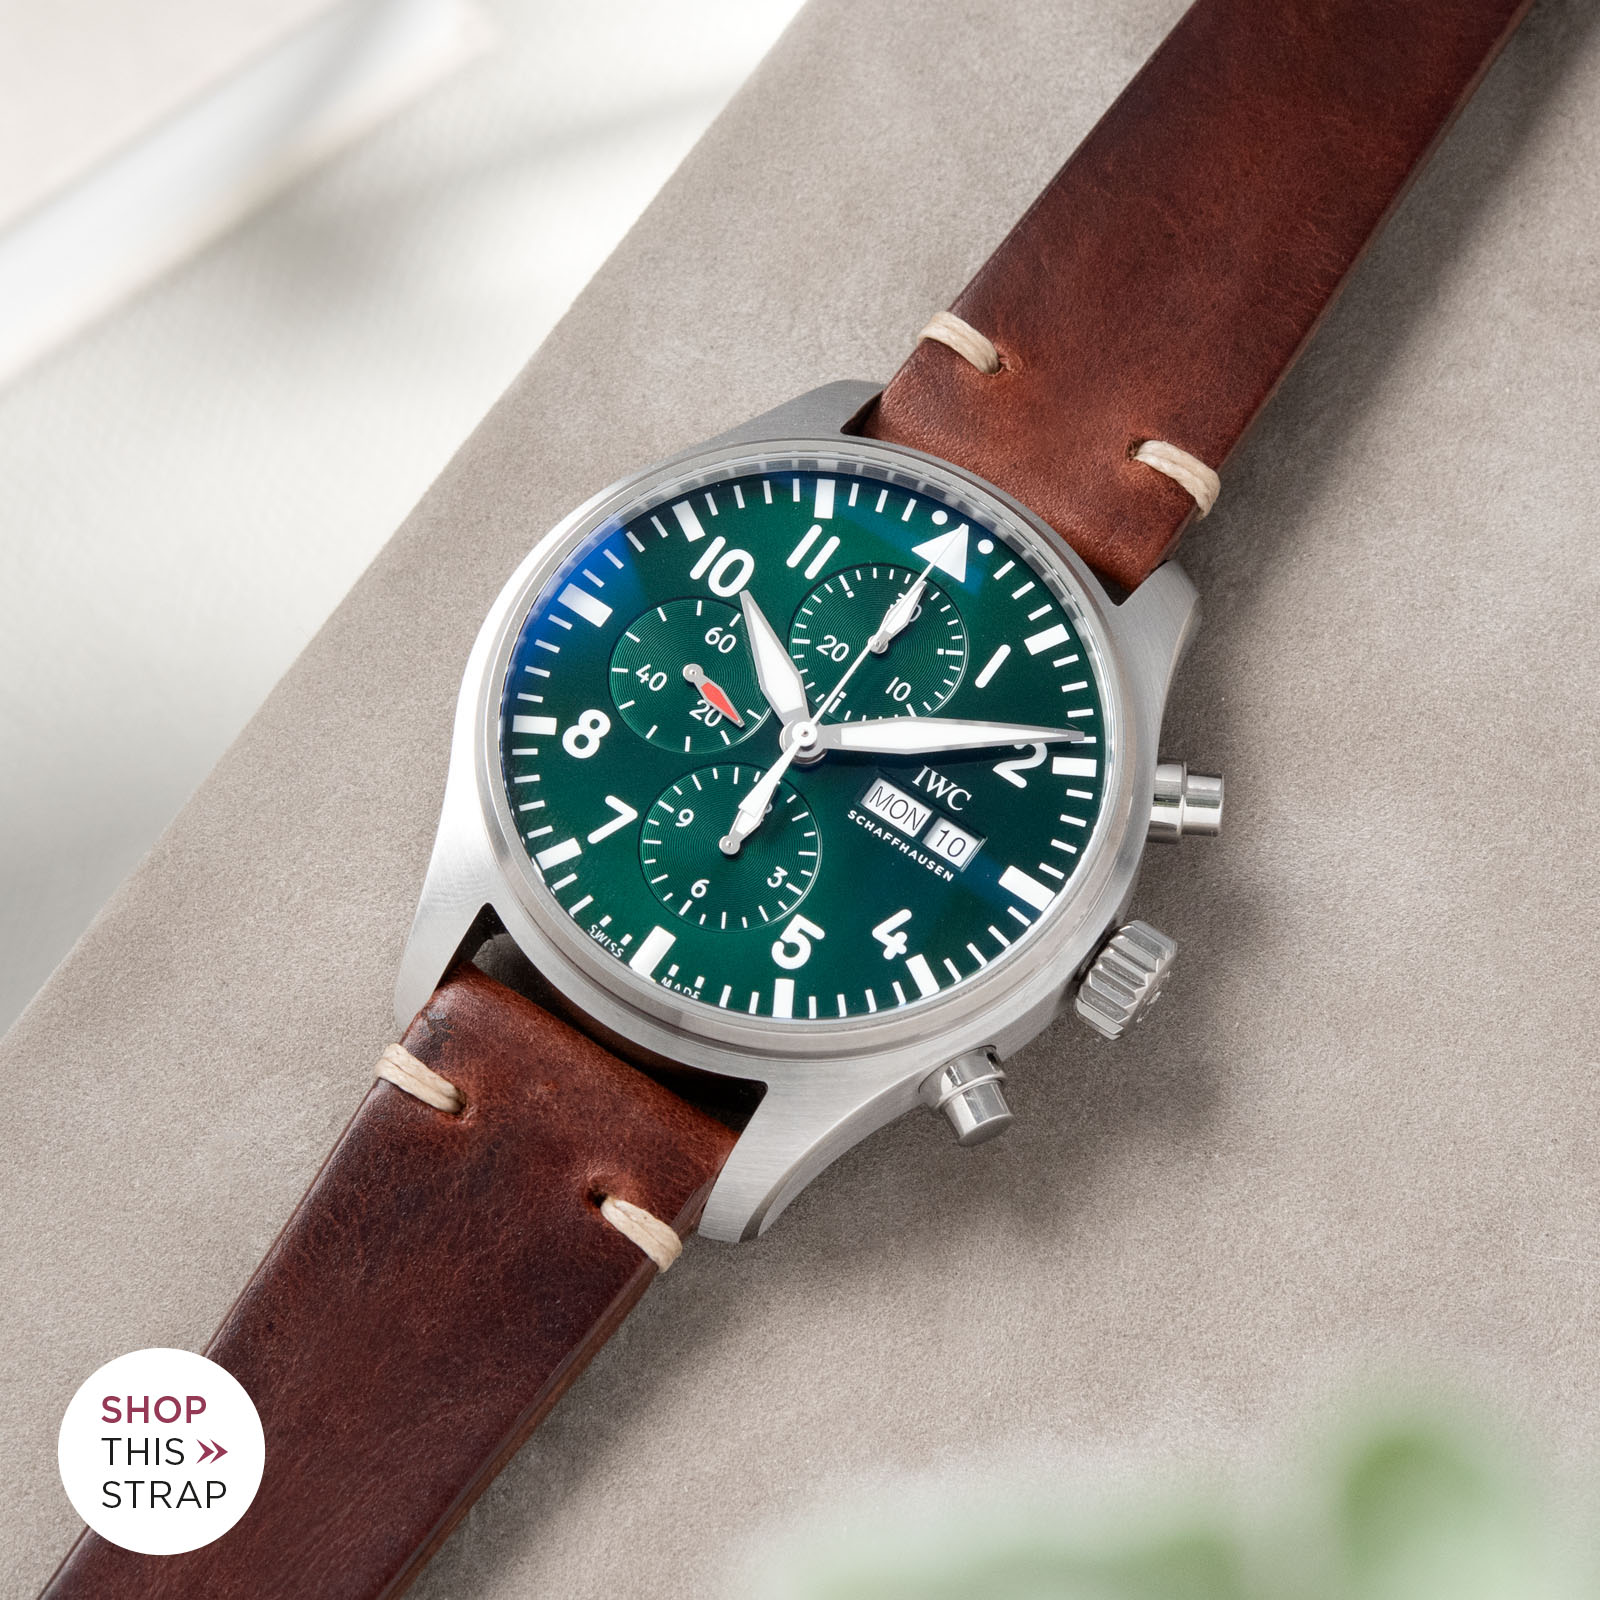 Bulang and Sons_Strapguide_IWC Pilots Watch Chronograph Spitfire_Siena Brown Leather Watch Strap